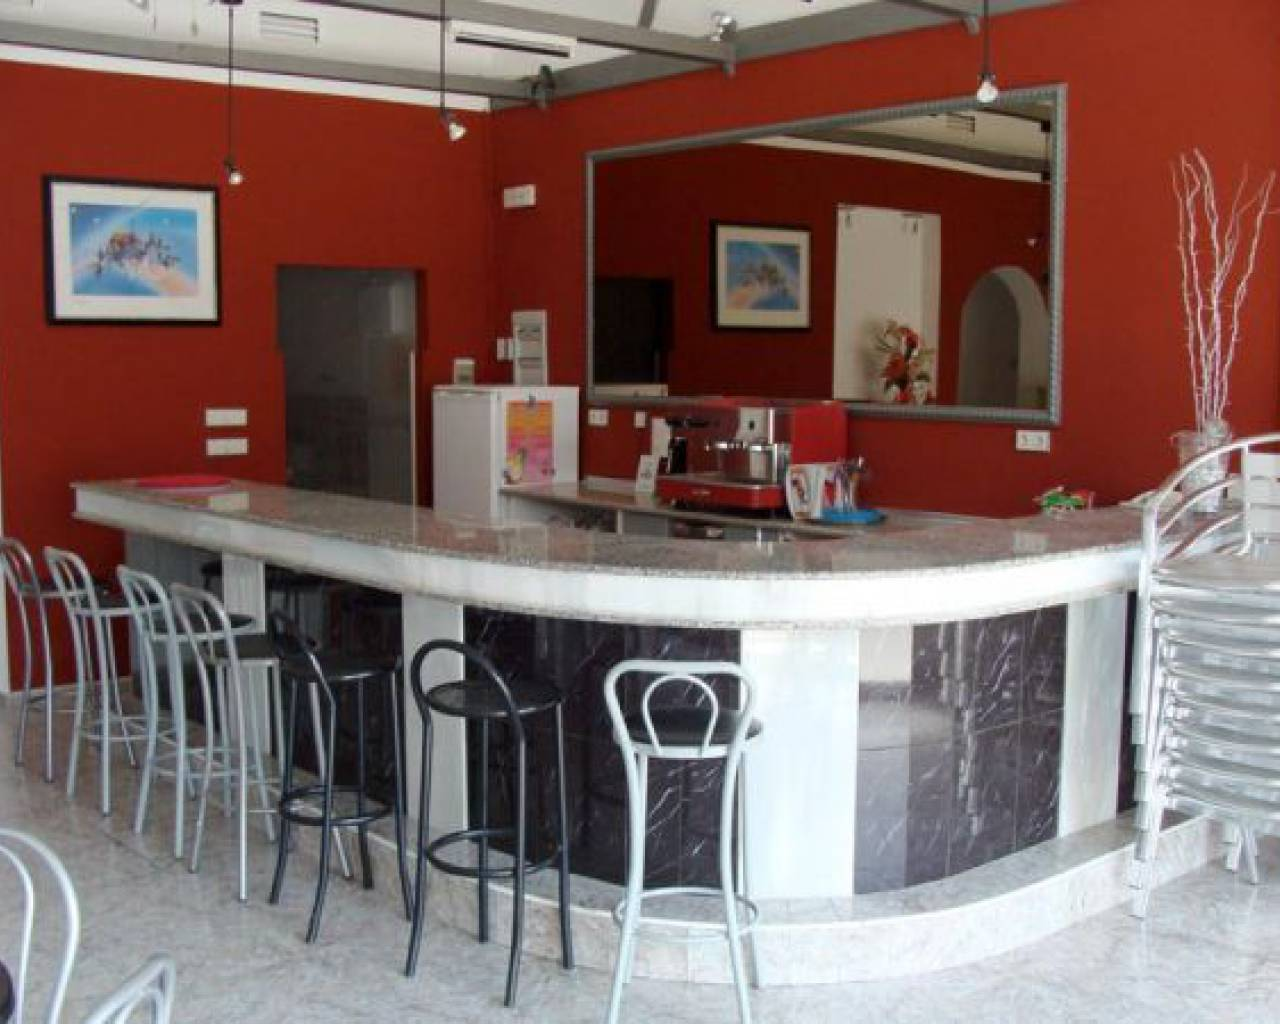 Reventa - Local comercial - Orihuela Costa - Villamartin Golf